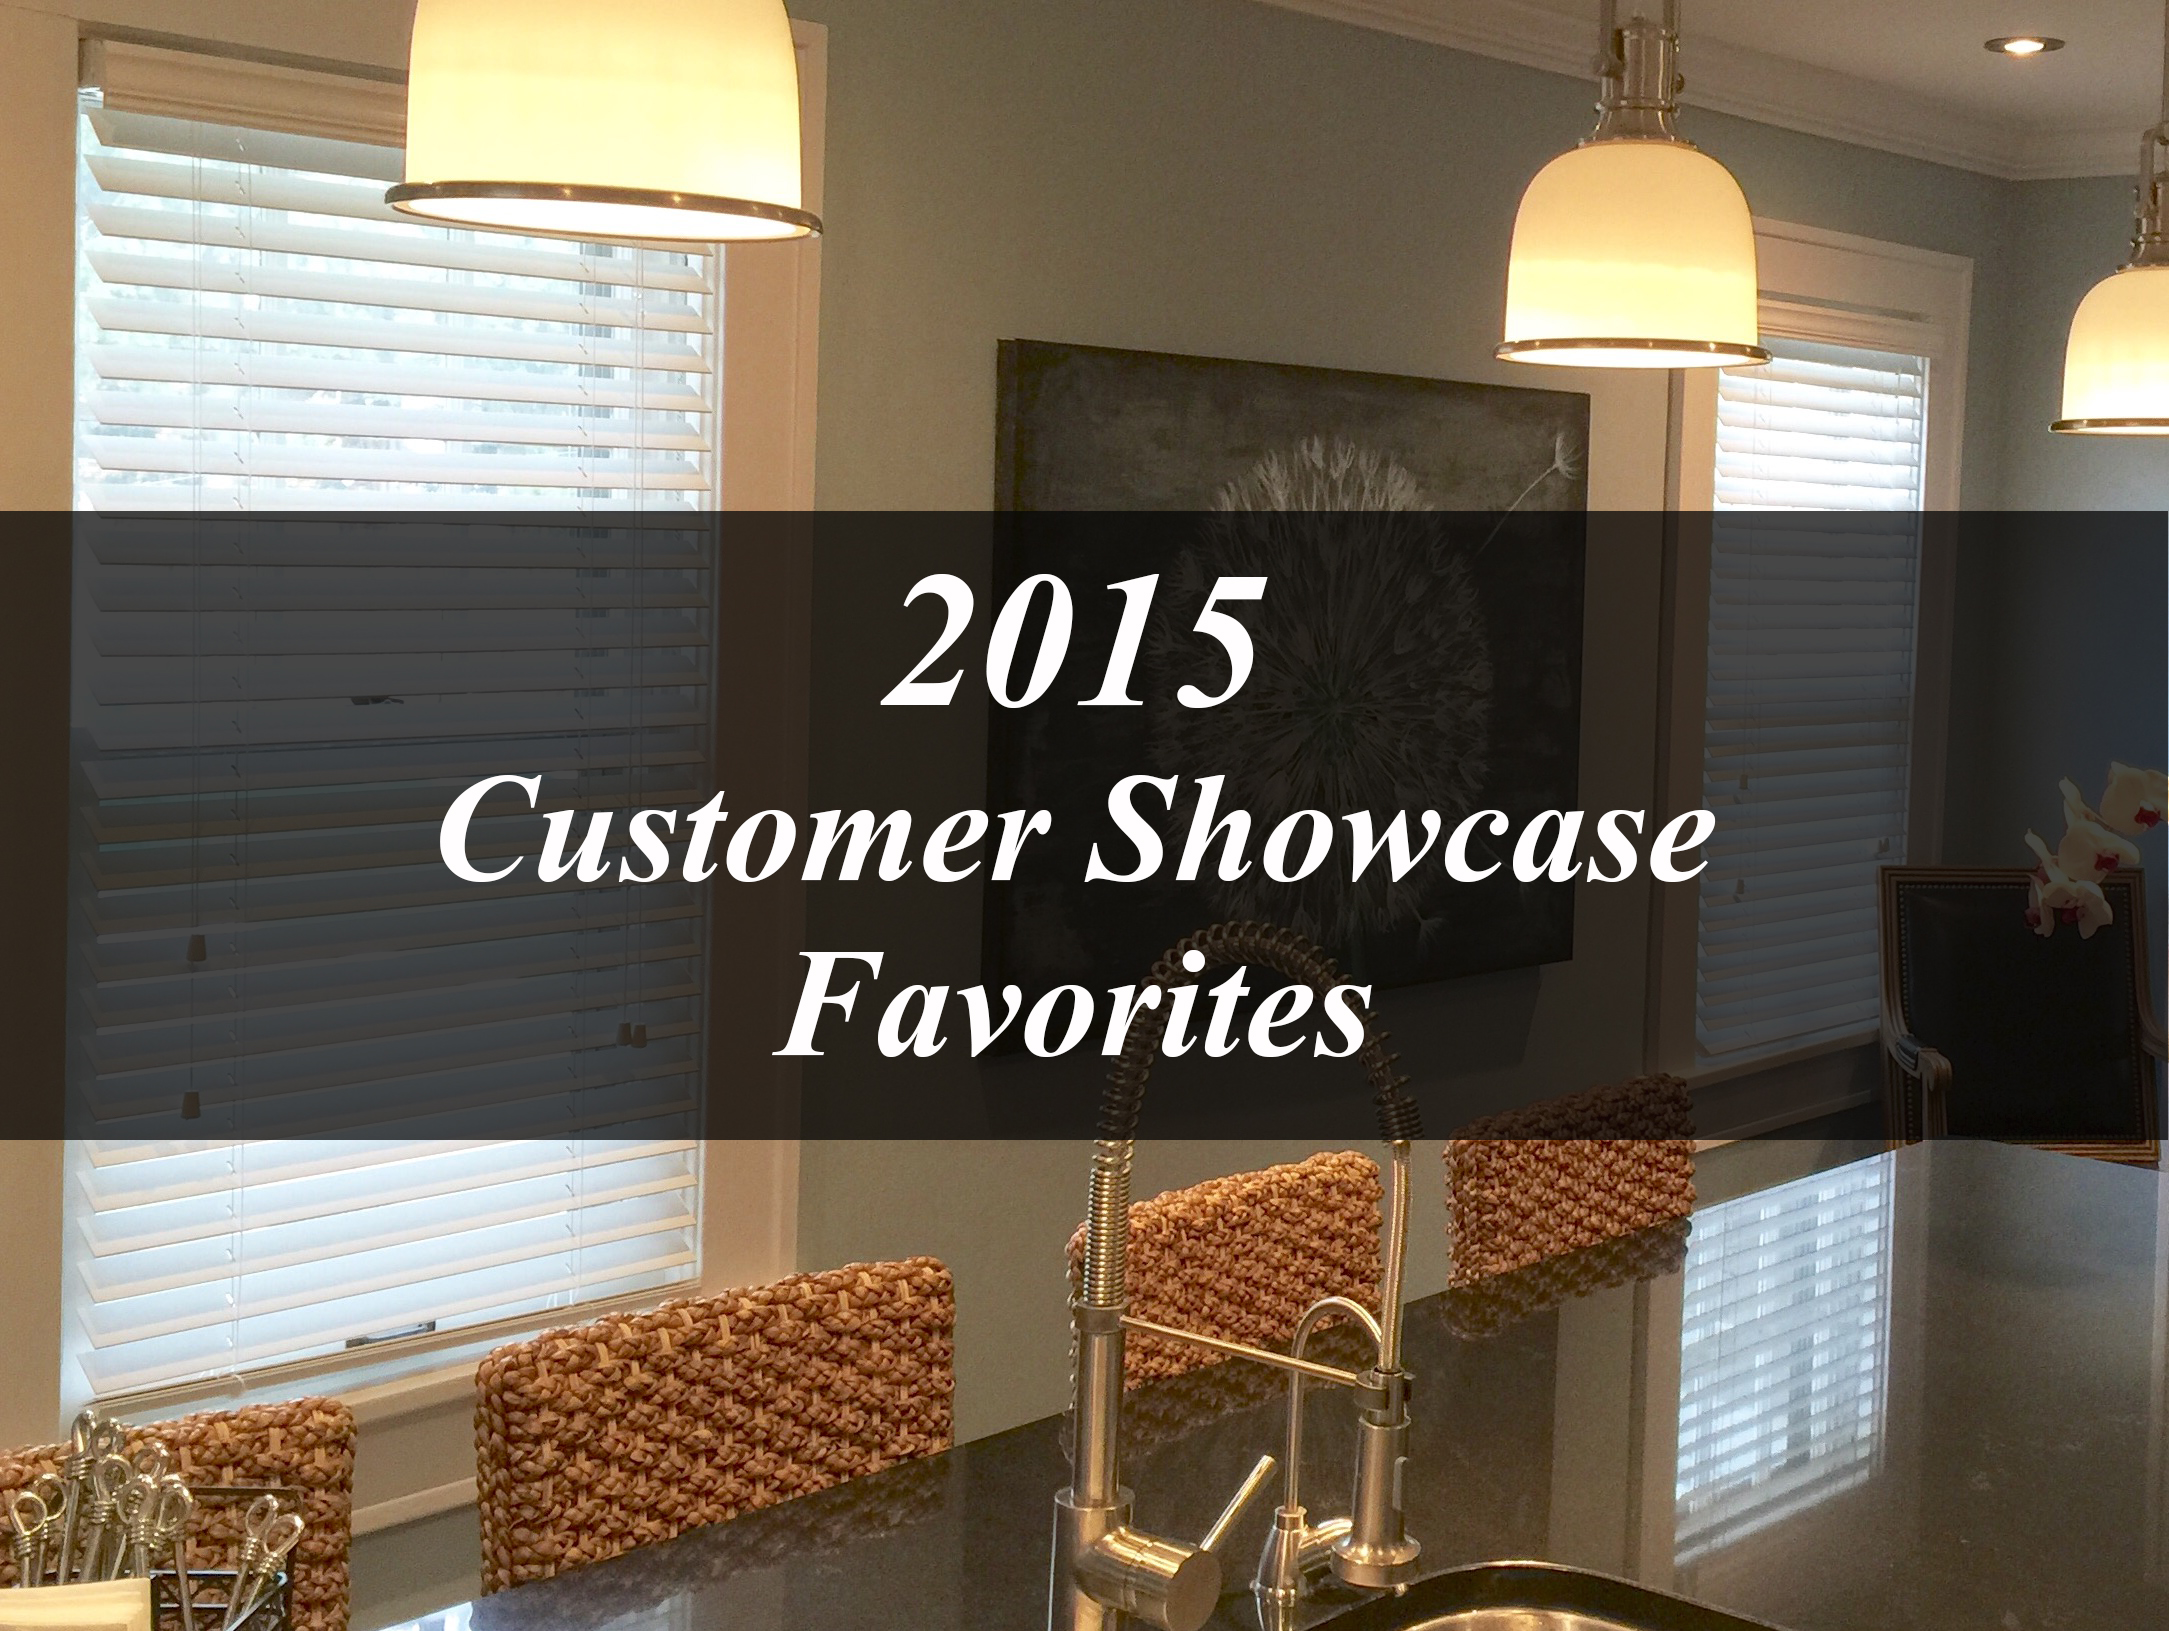 2015 Customer Showcase Favorites